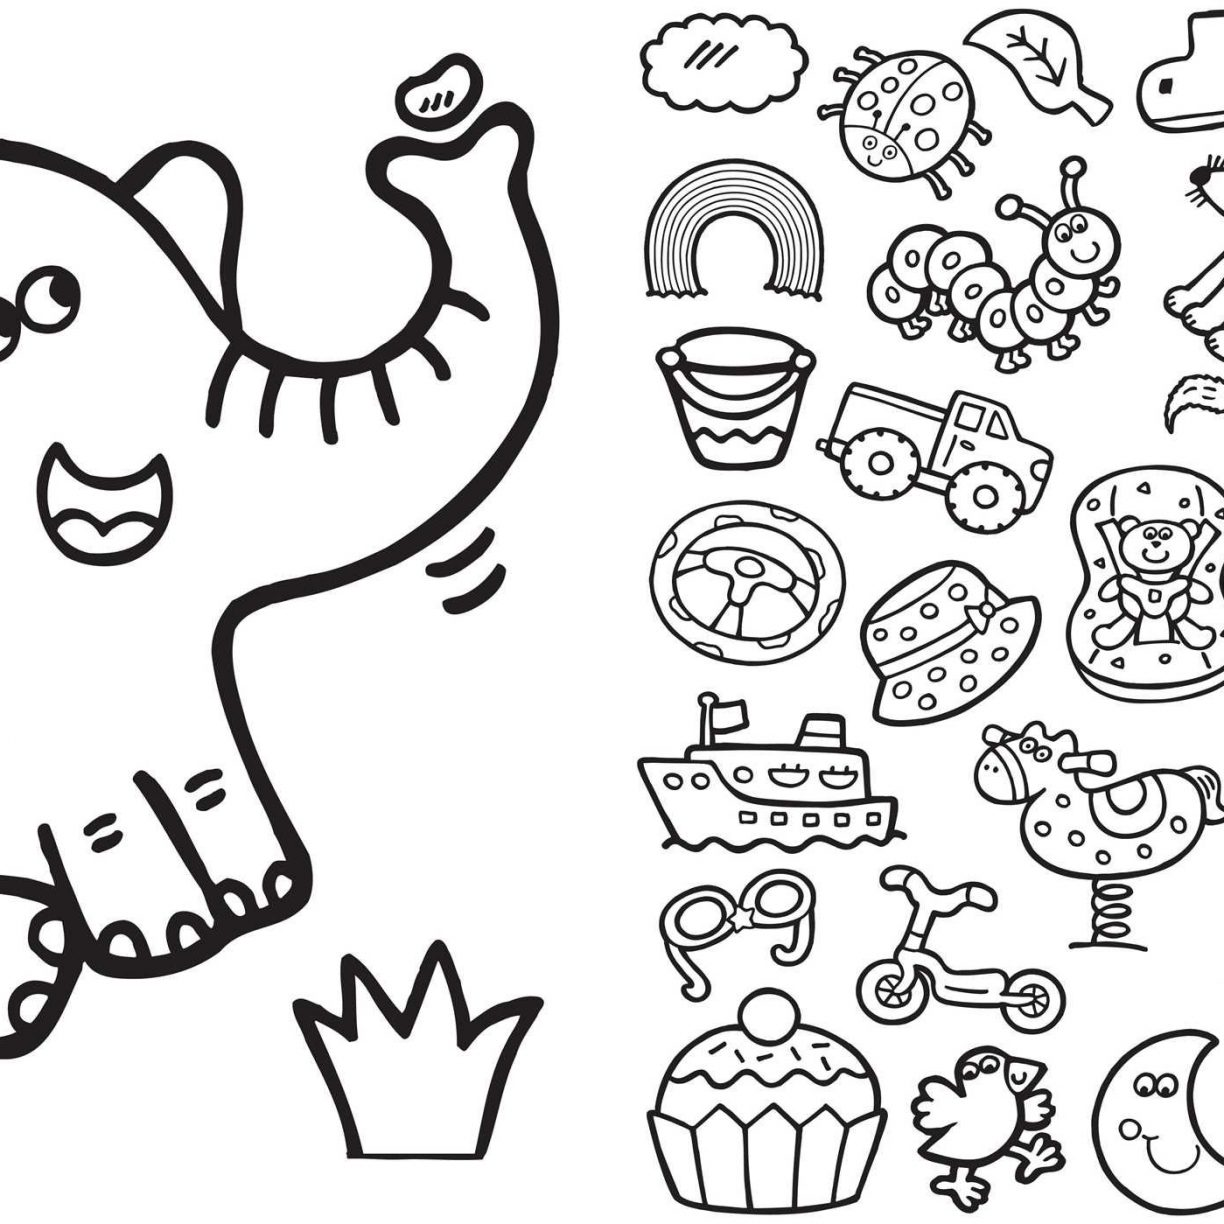 1224x1224 Baby Swan Coloring Page Free Printable For 4 Year Old Pages Kids